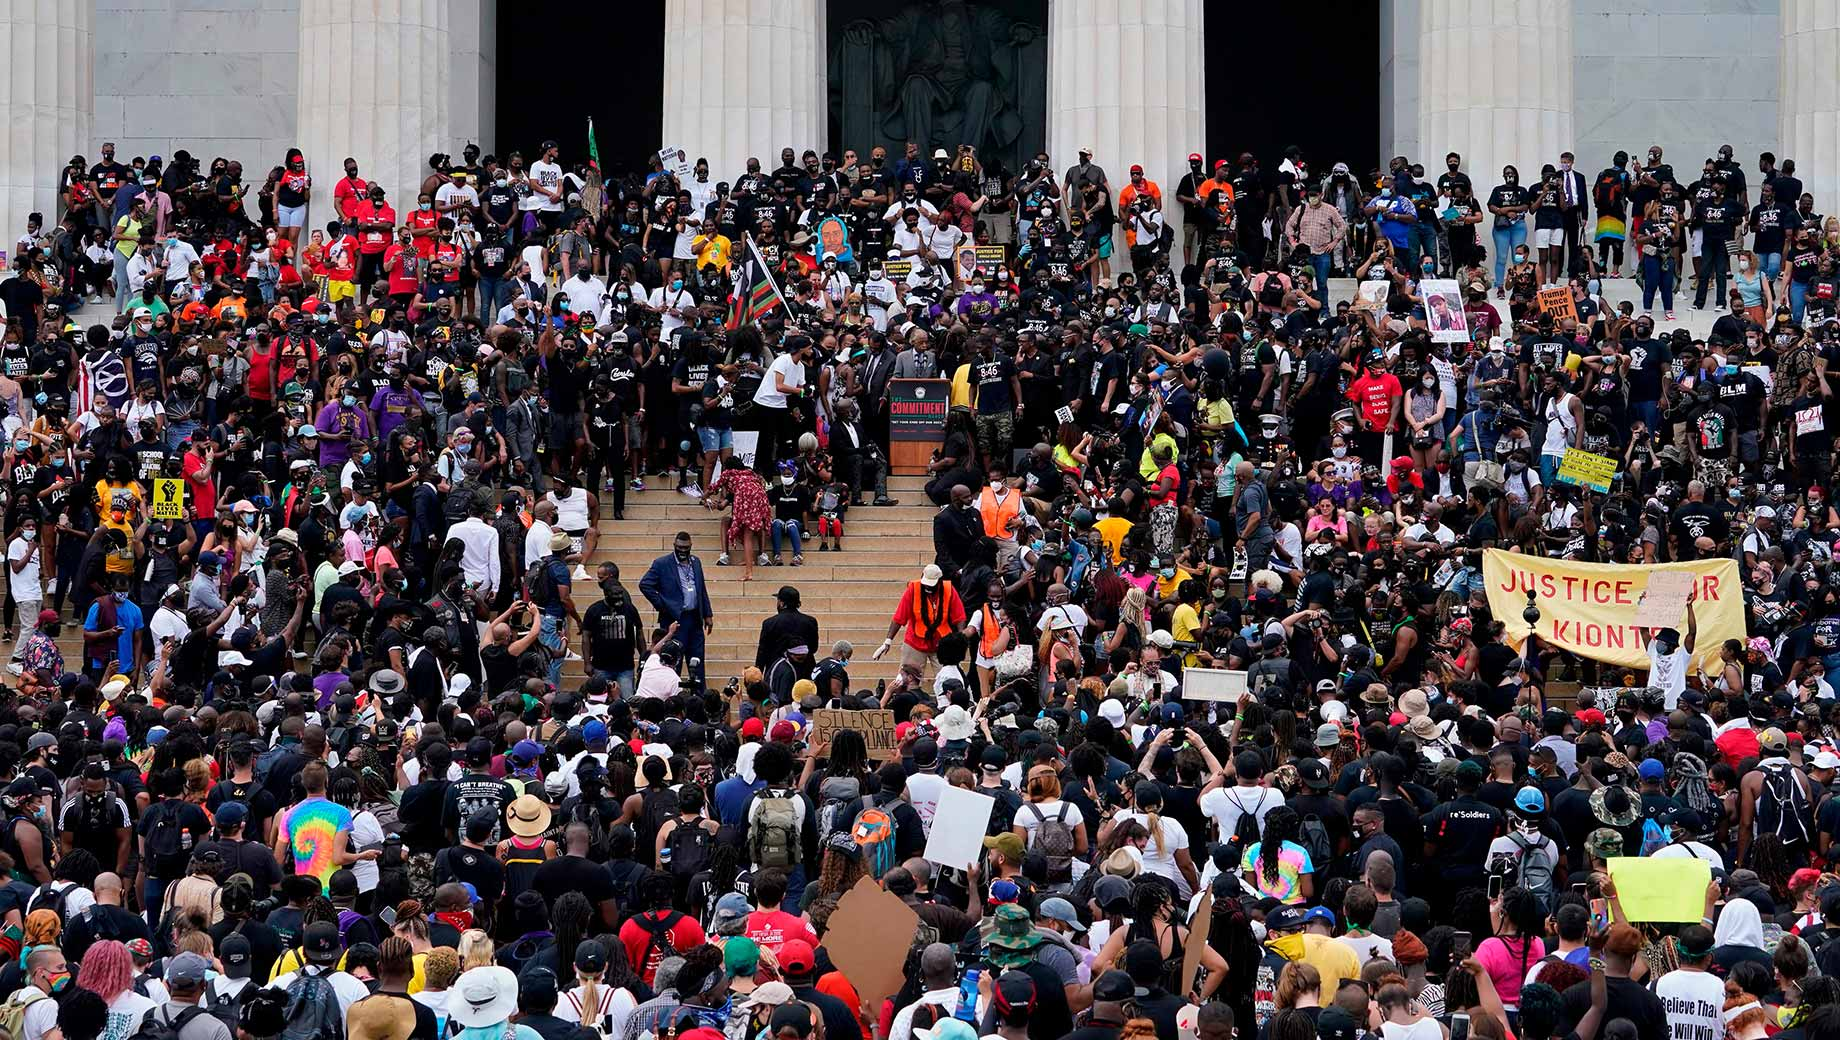 New Low in U.S. See Progress for Black Civil Rights